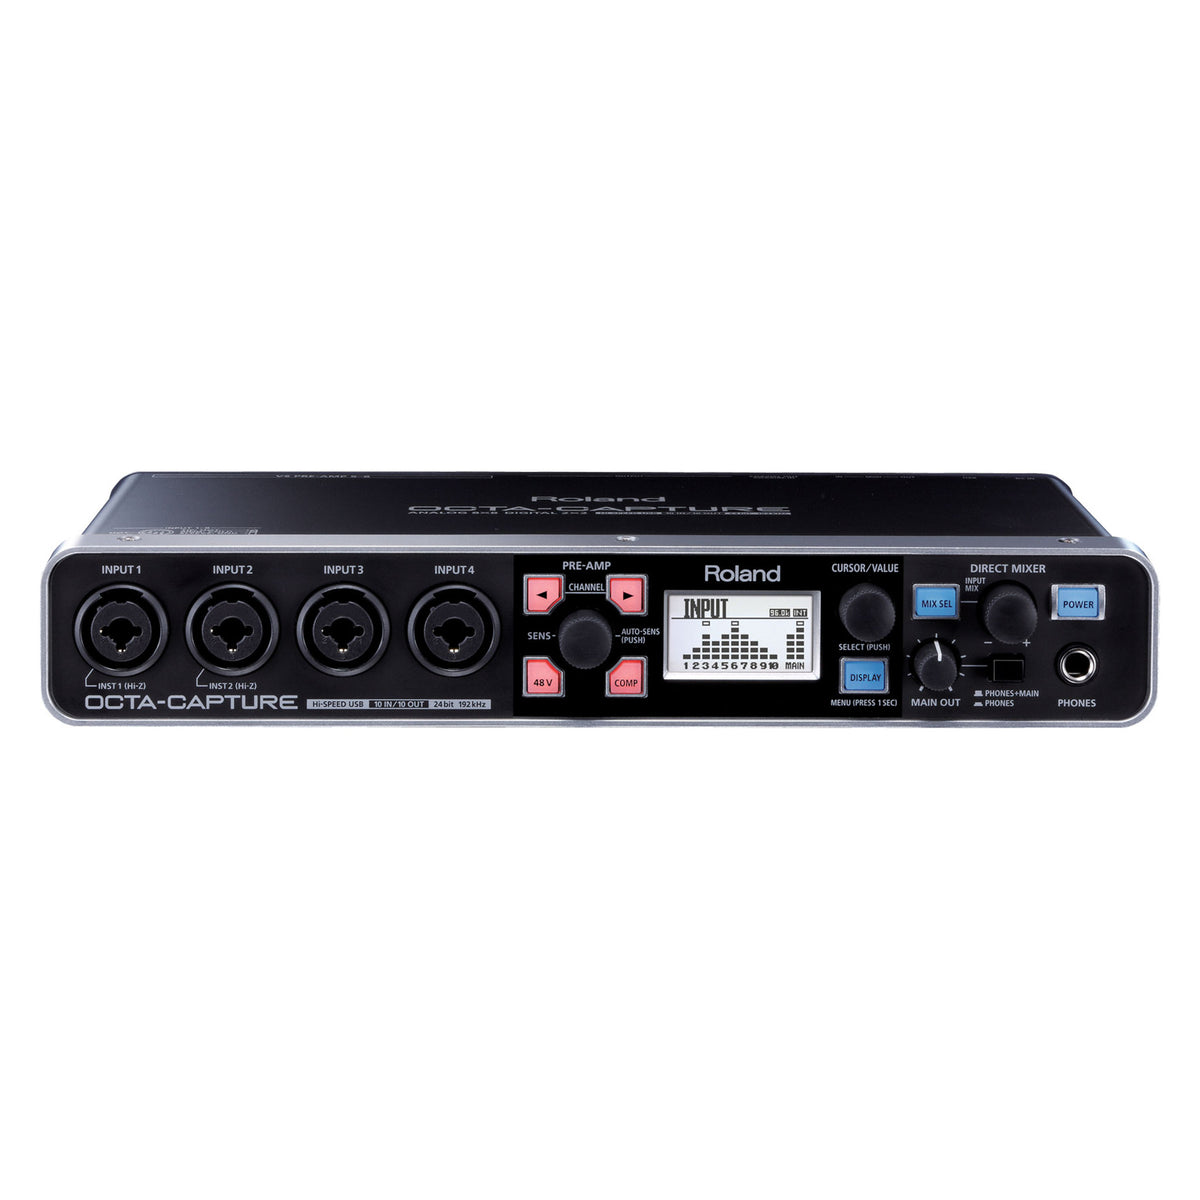 Roland: Octa-Capture Hi-Speed USB Audio Interface (UA-1010)